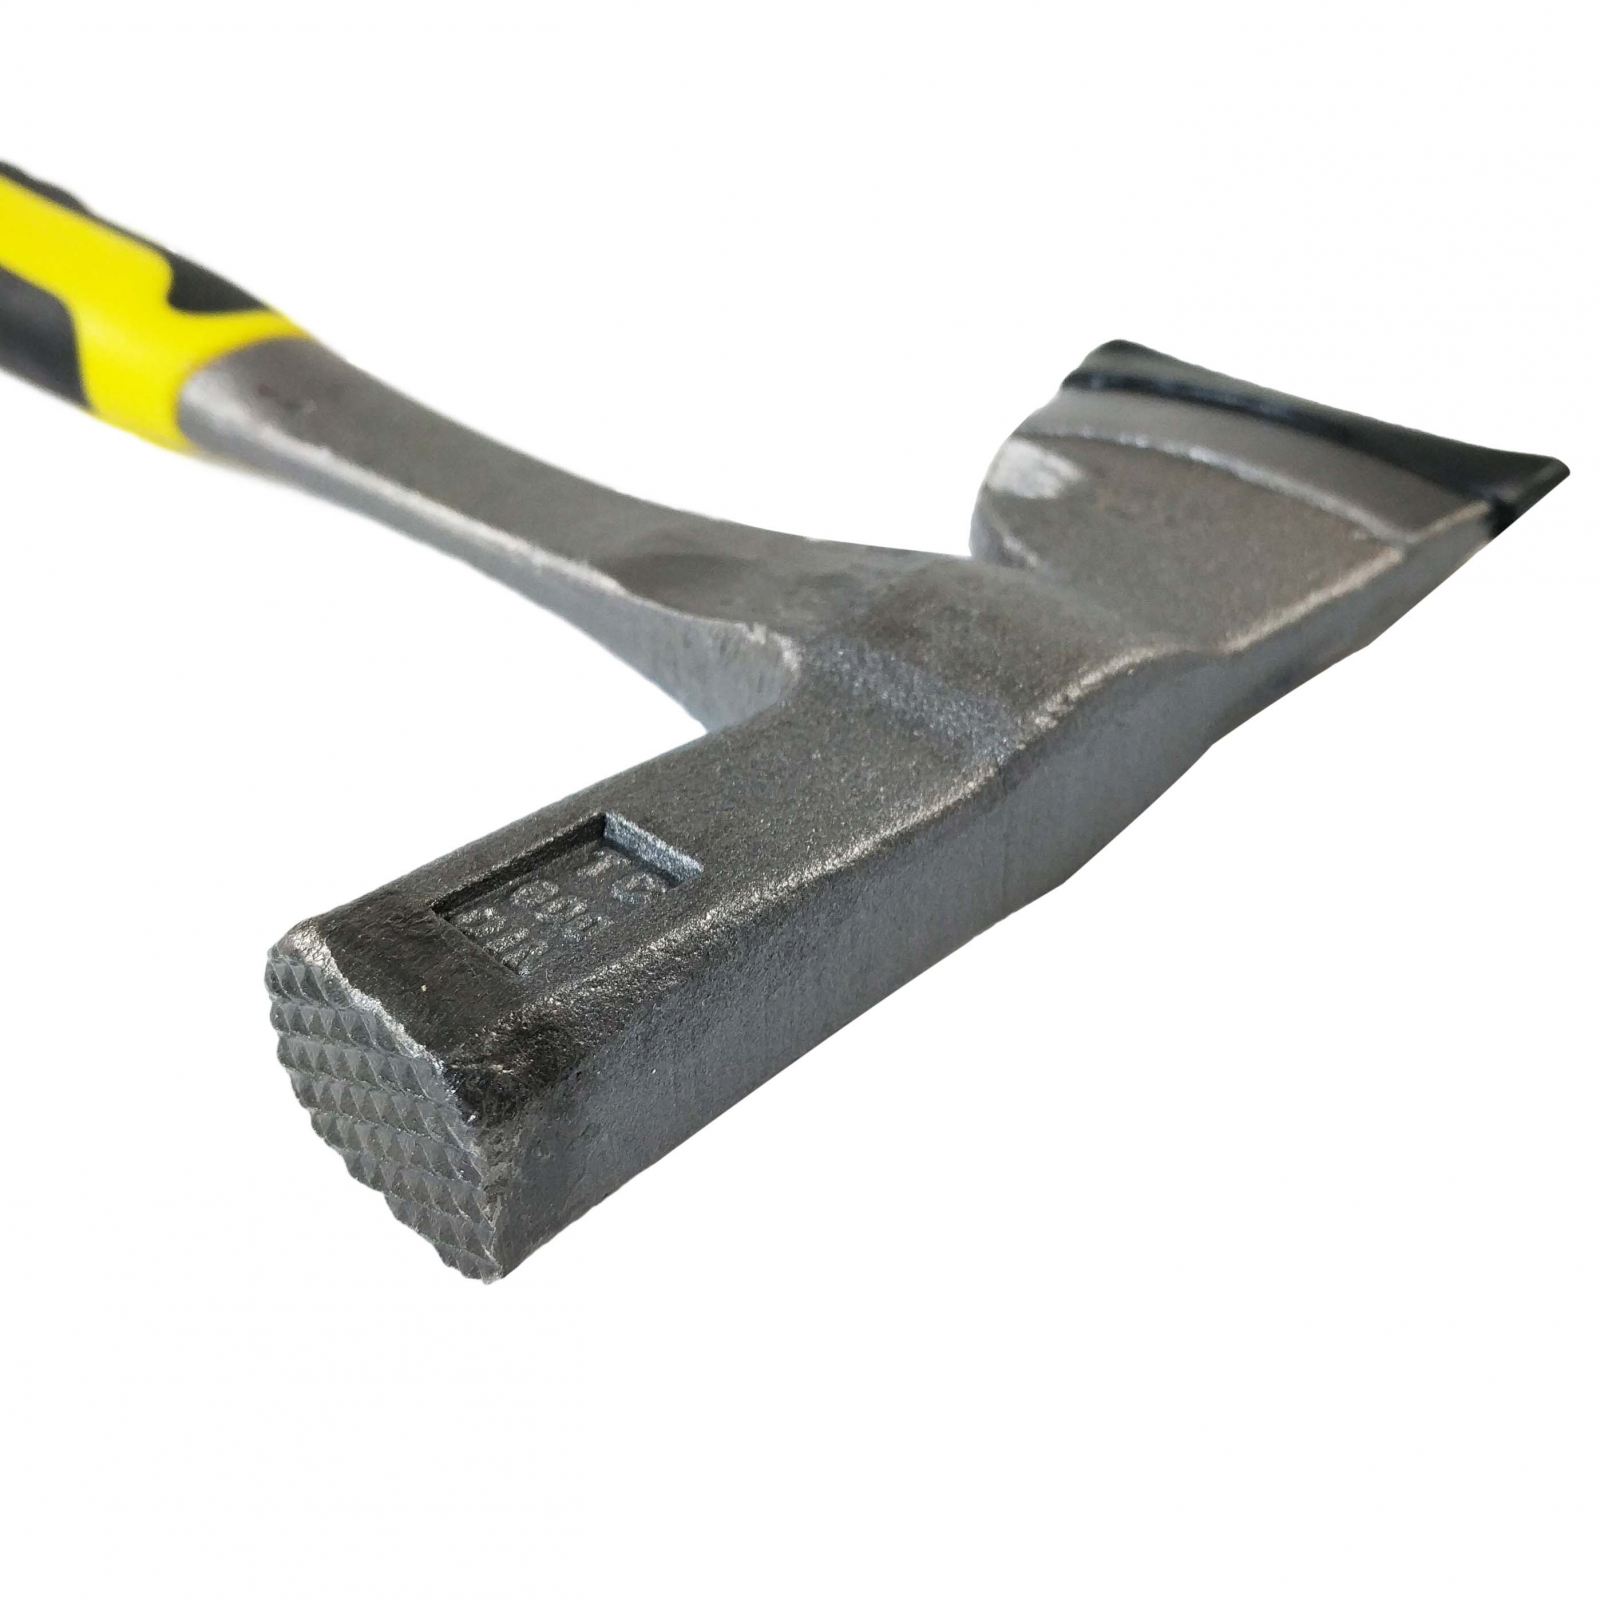 Multi-Use Dual Head Hatchet and Textured Hammer Combo